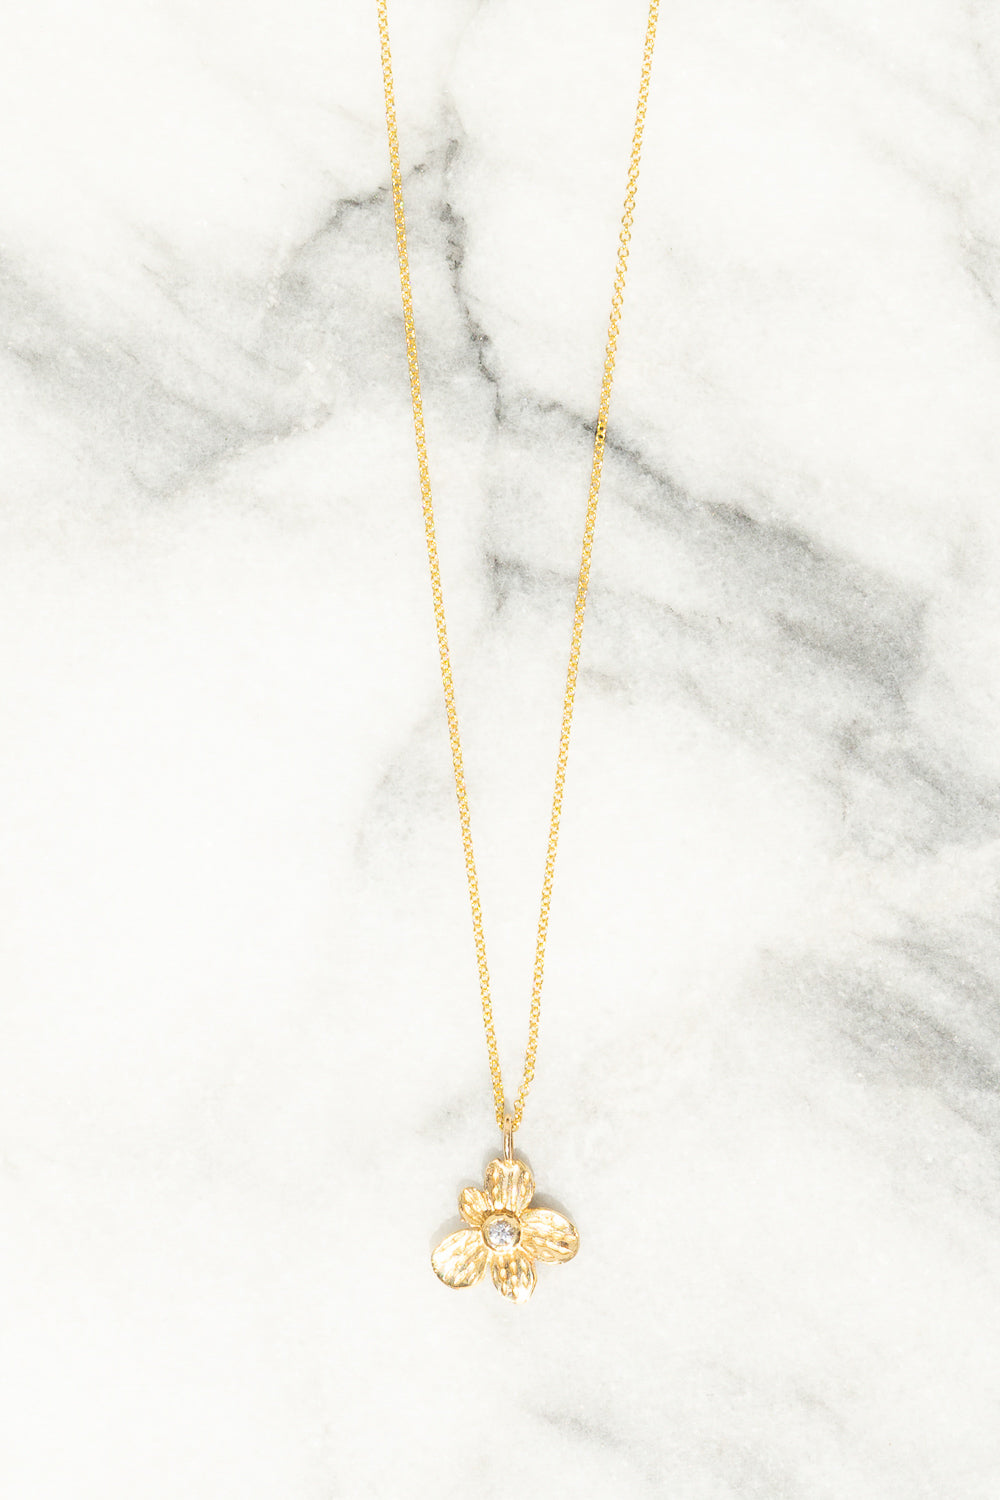 gold flower charm necklace with white sapphire center